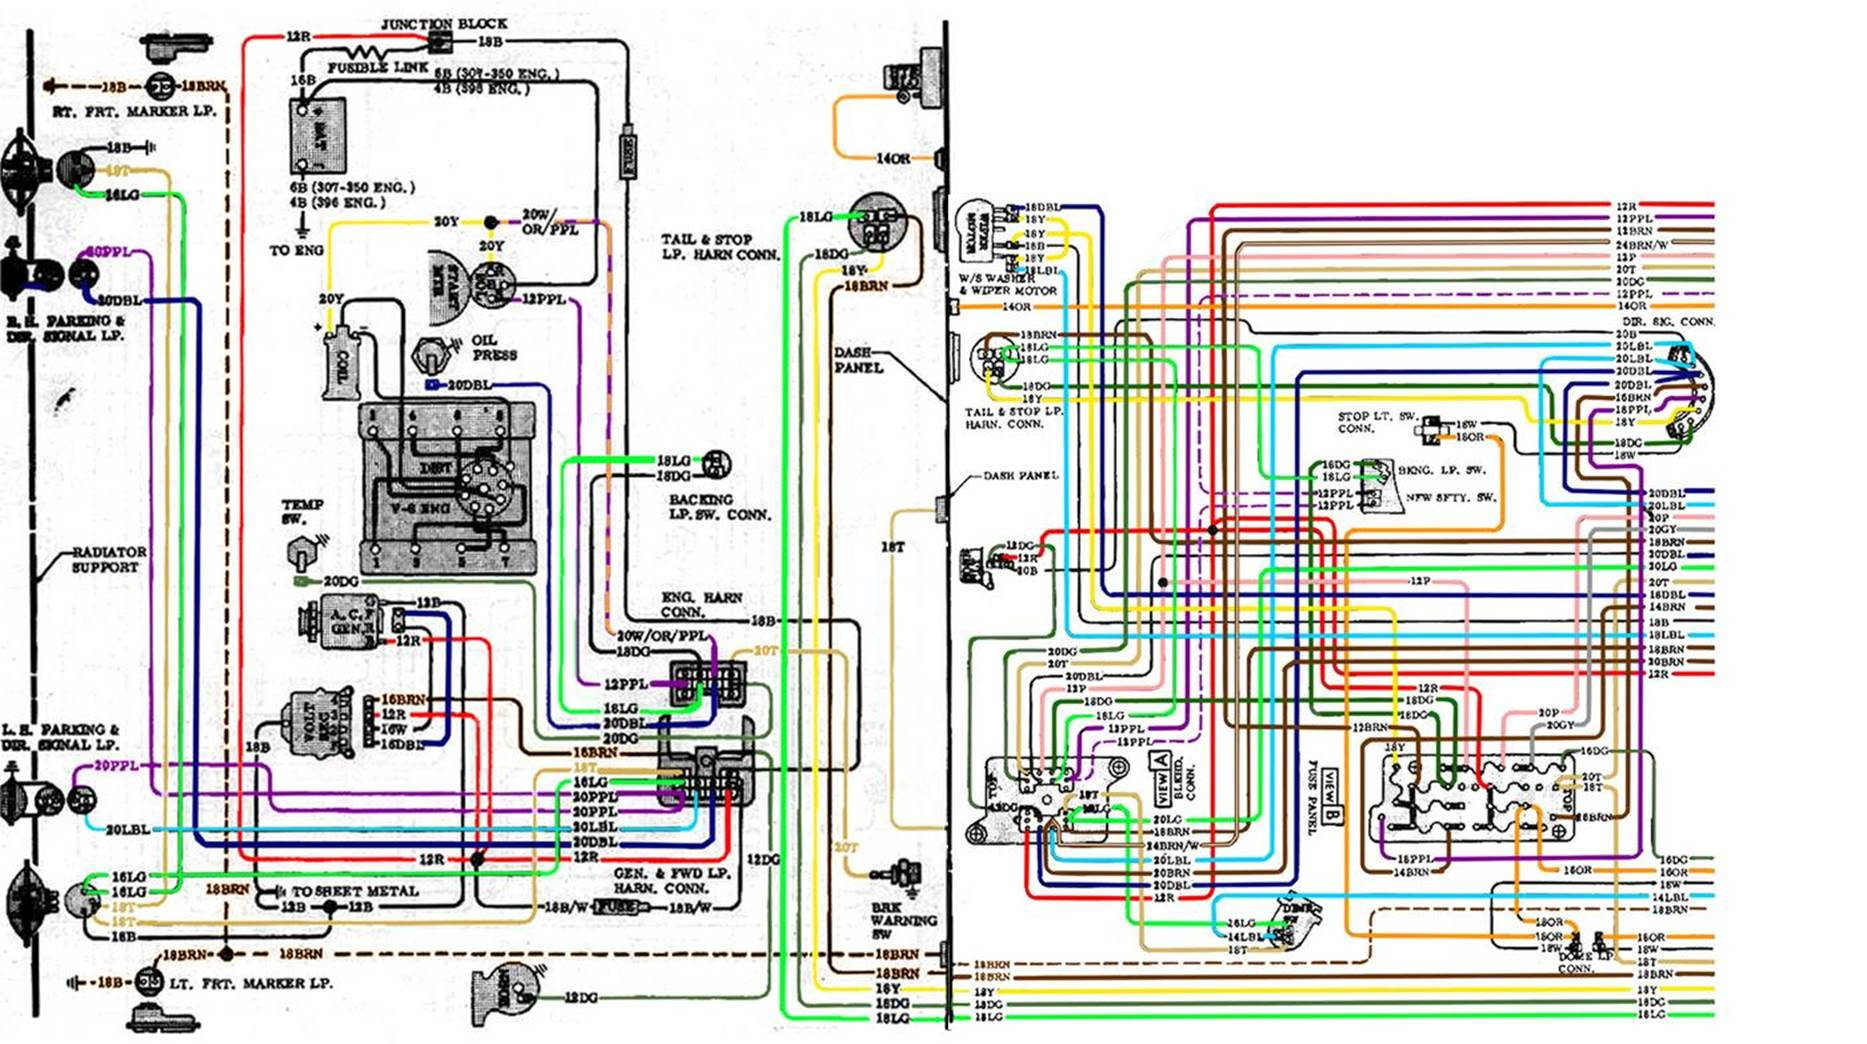 image002 67 72 chevy wiring diagram 78 chevy c10 wiring harness at bayanpartner.co